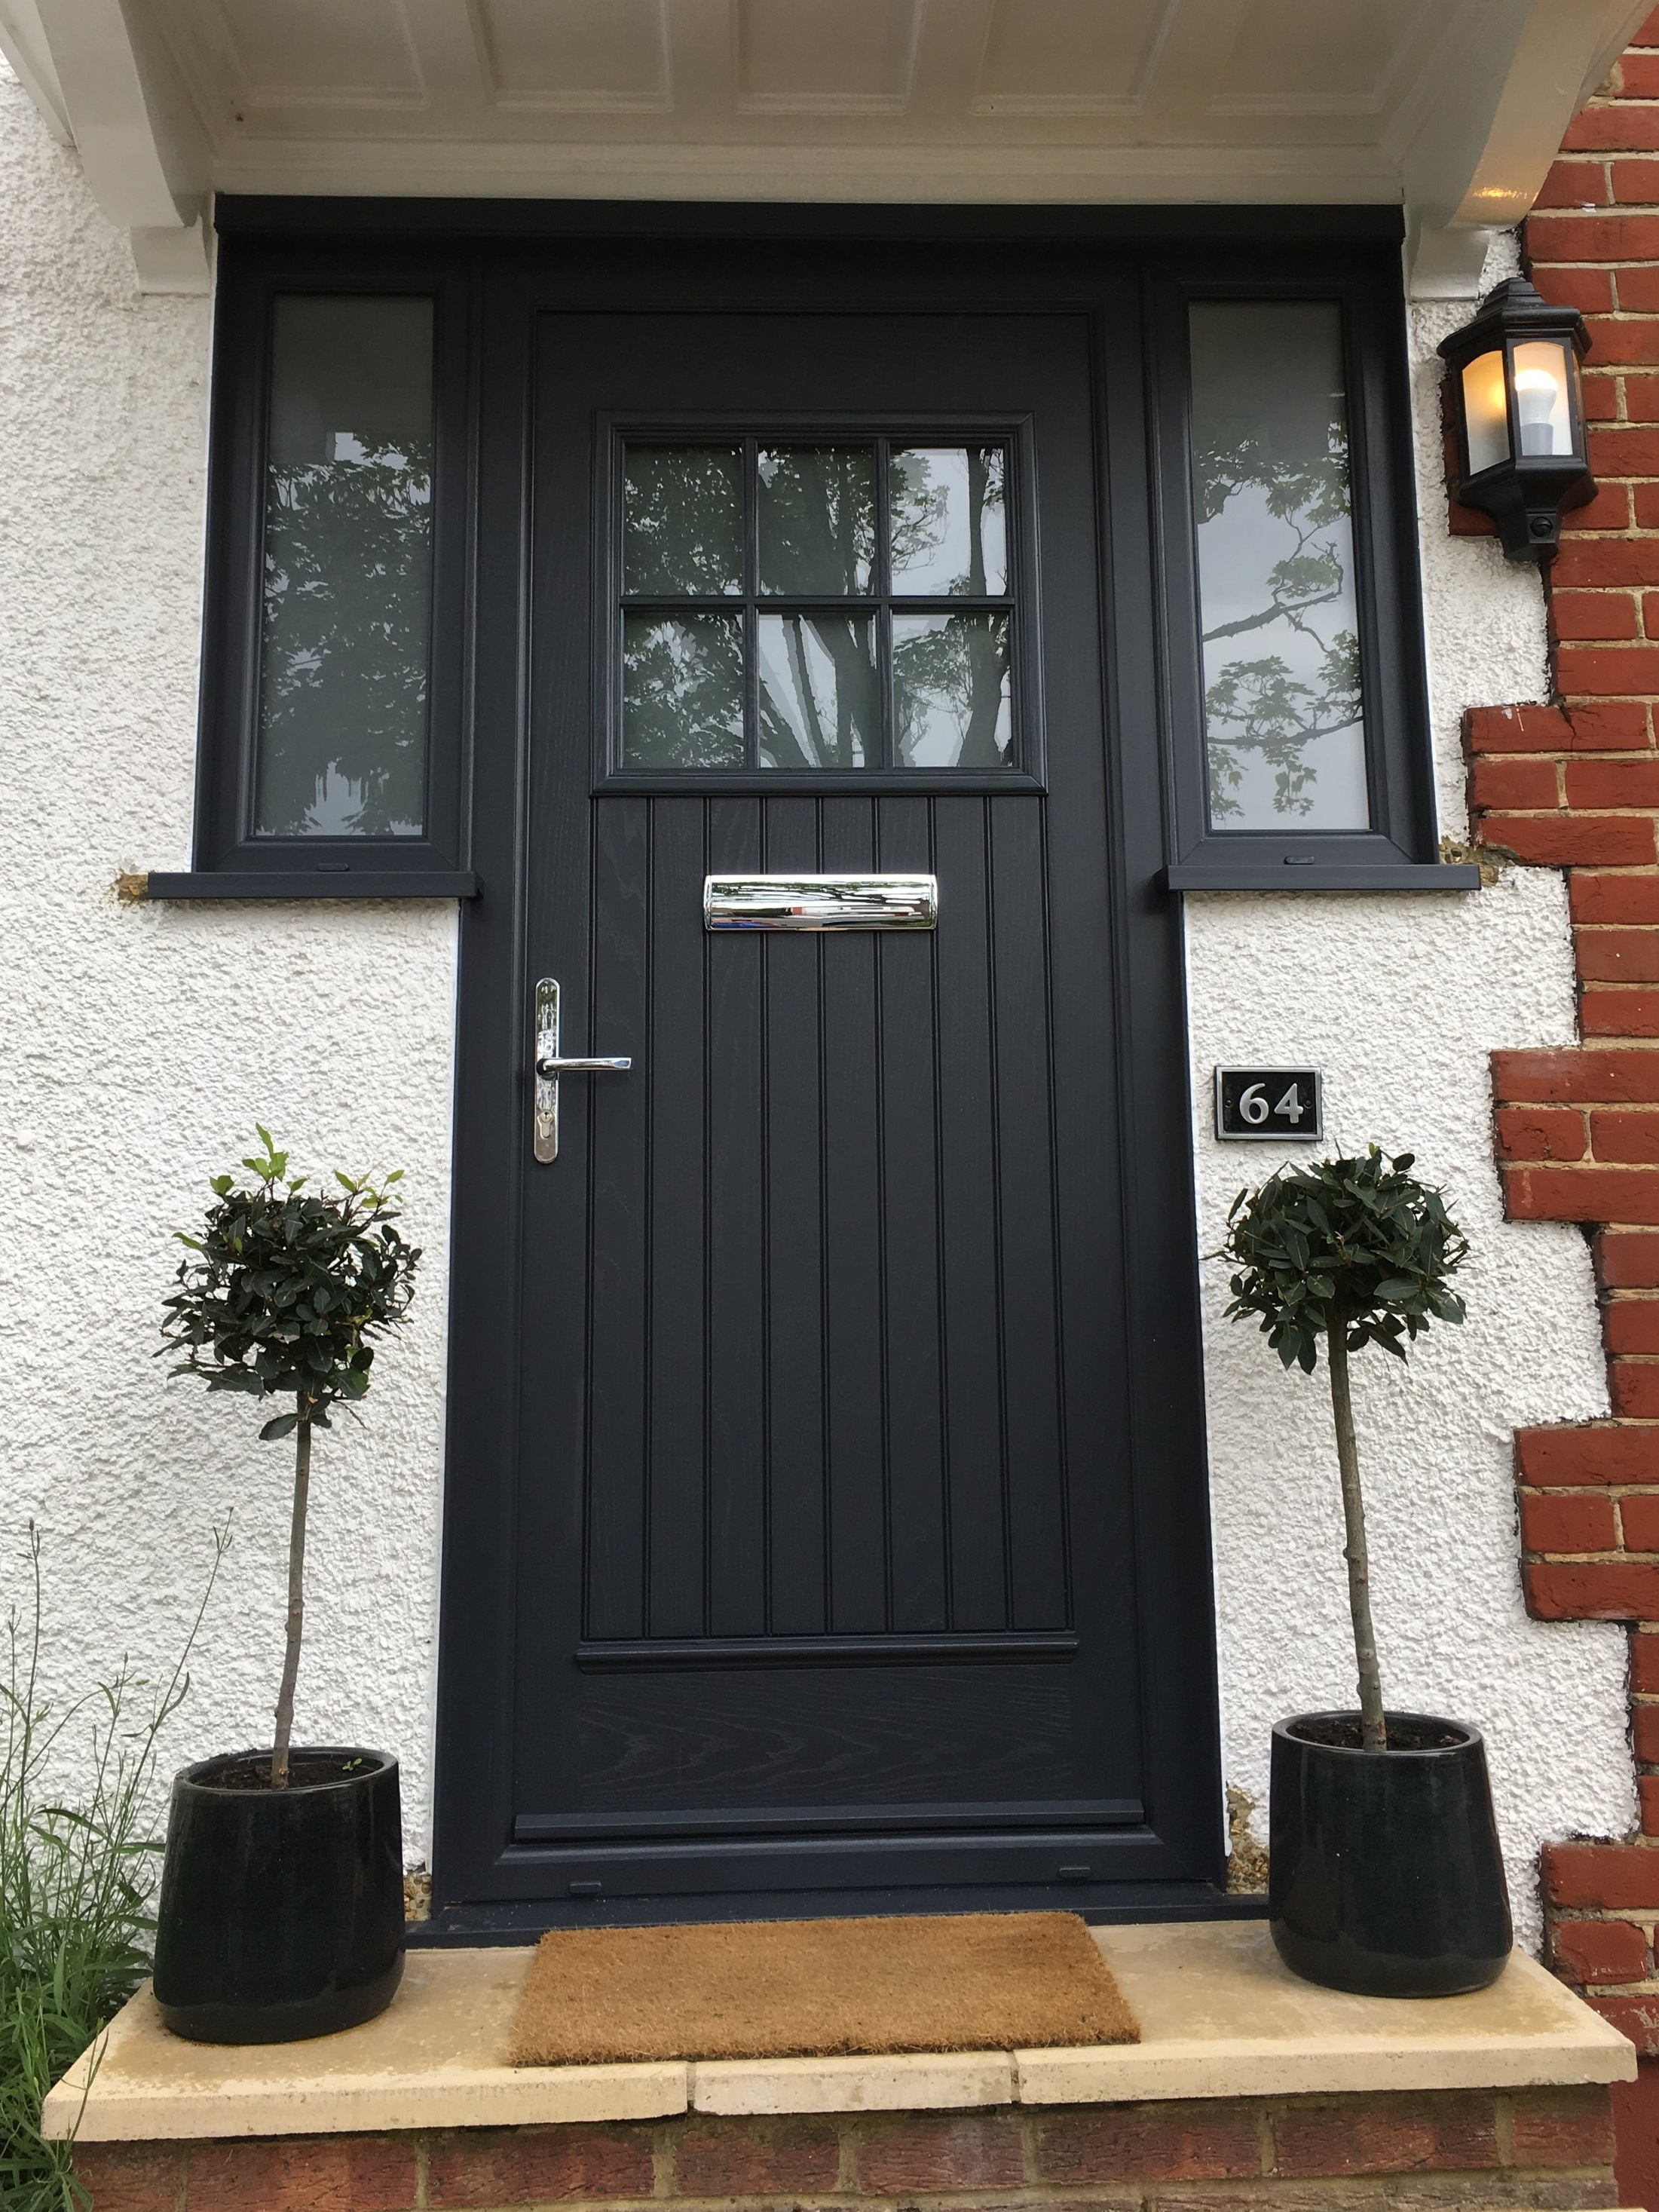 Entrance Doors - What better way to make a positive initial statement and secure your home against weather and intruders than with a new composite door from our wide range, tailored perfectly to suit your project?There is a door in our range to suit everyone, whether you wish to add visual impact or simply blend seamlessly with the style of your home. Choose from one of our wood grain finishes or our range of glazing options, both functional and ornamental.We can provide obscured glazing, stained glass, lead features and a variety of energy efficiency ratings. We offer a large choice of furnishings to further tailor your new door to your personal taste. View our range of front doors in the brochures below:Palladio Door BrochureSash Next-Gen Door Brochure.If you would like to book a no obligation home survey please call our showroom team who will be more than happy to discuss your enquiry: 020 8361 0128.